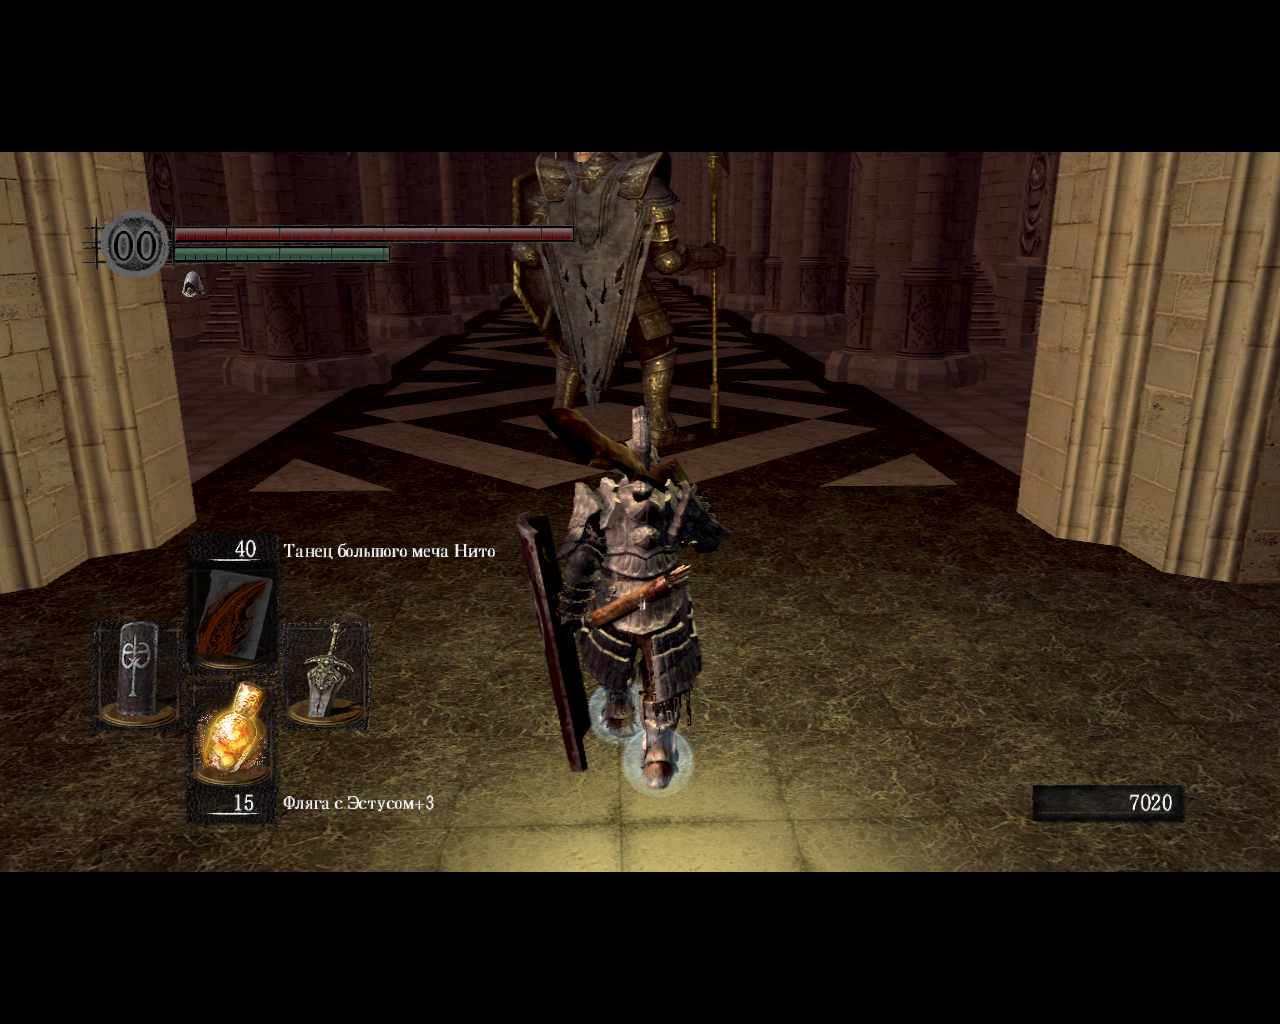 Dark Souls: Prepare to Die Edition Windows Using an item to sneak stealthily upon the knight